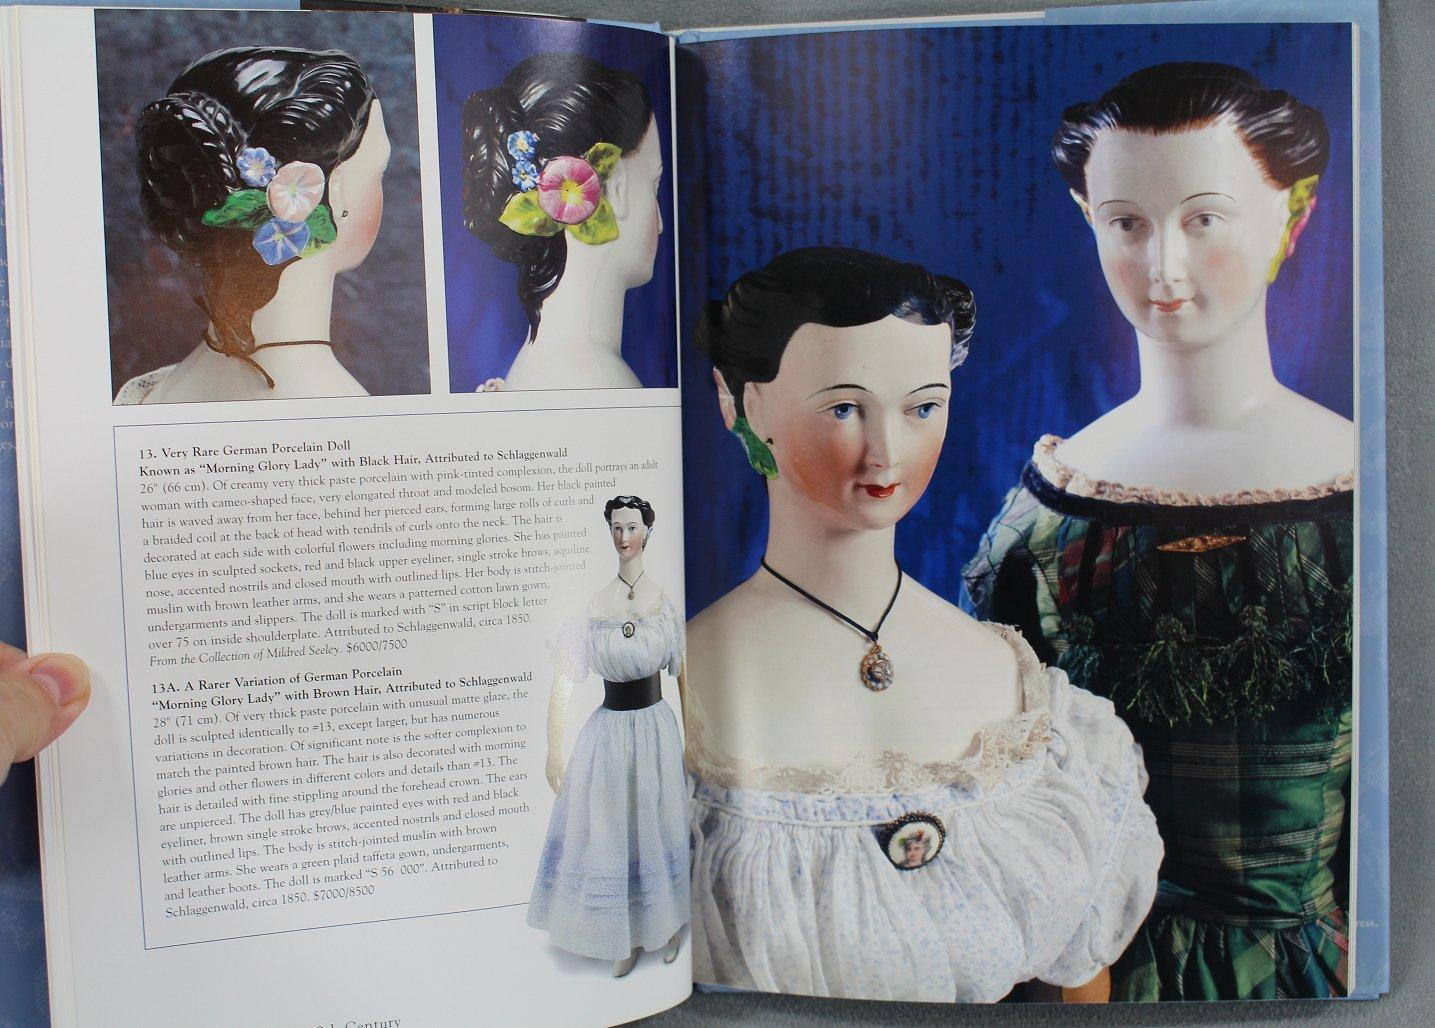 Lady Dolls of the 19th Century Florence Theriault (Hardcover, 2002)